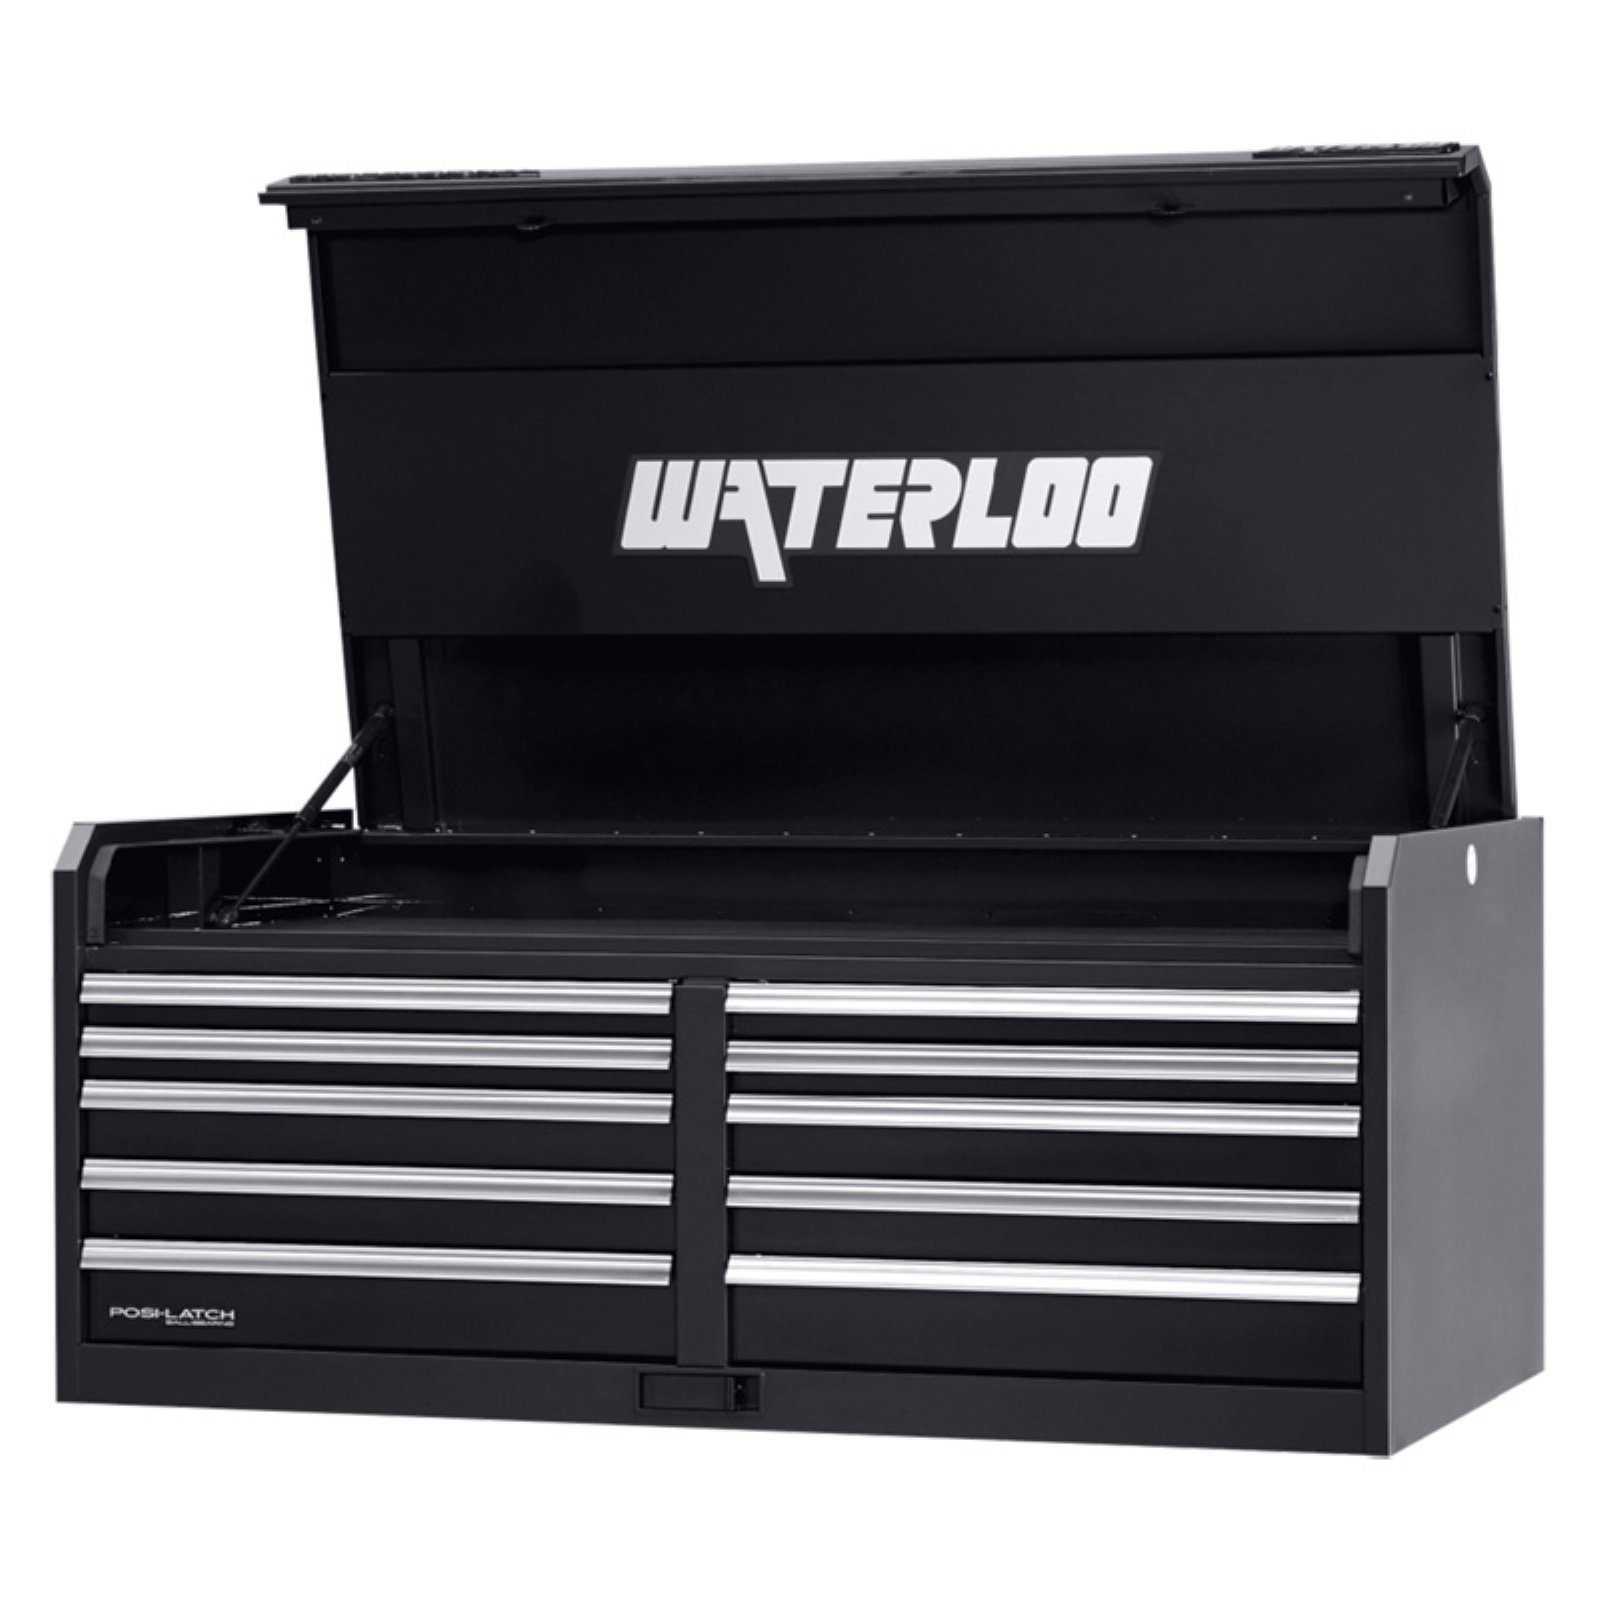 Waterloo Professional 56 in. 10 Drawer Chest